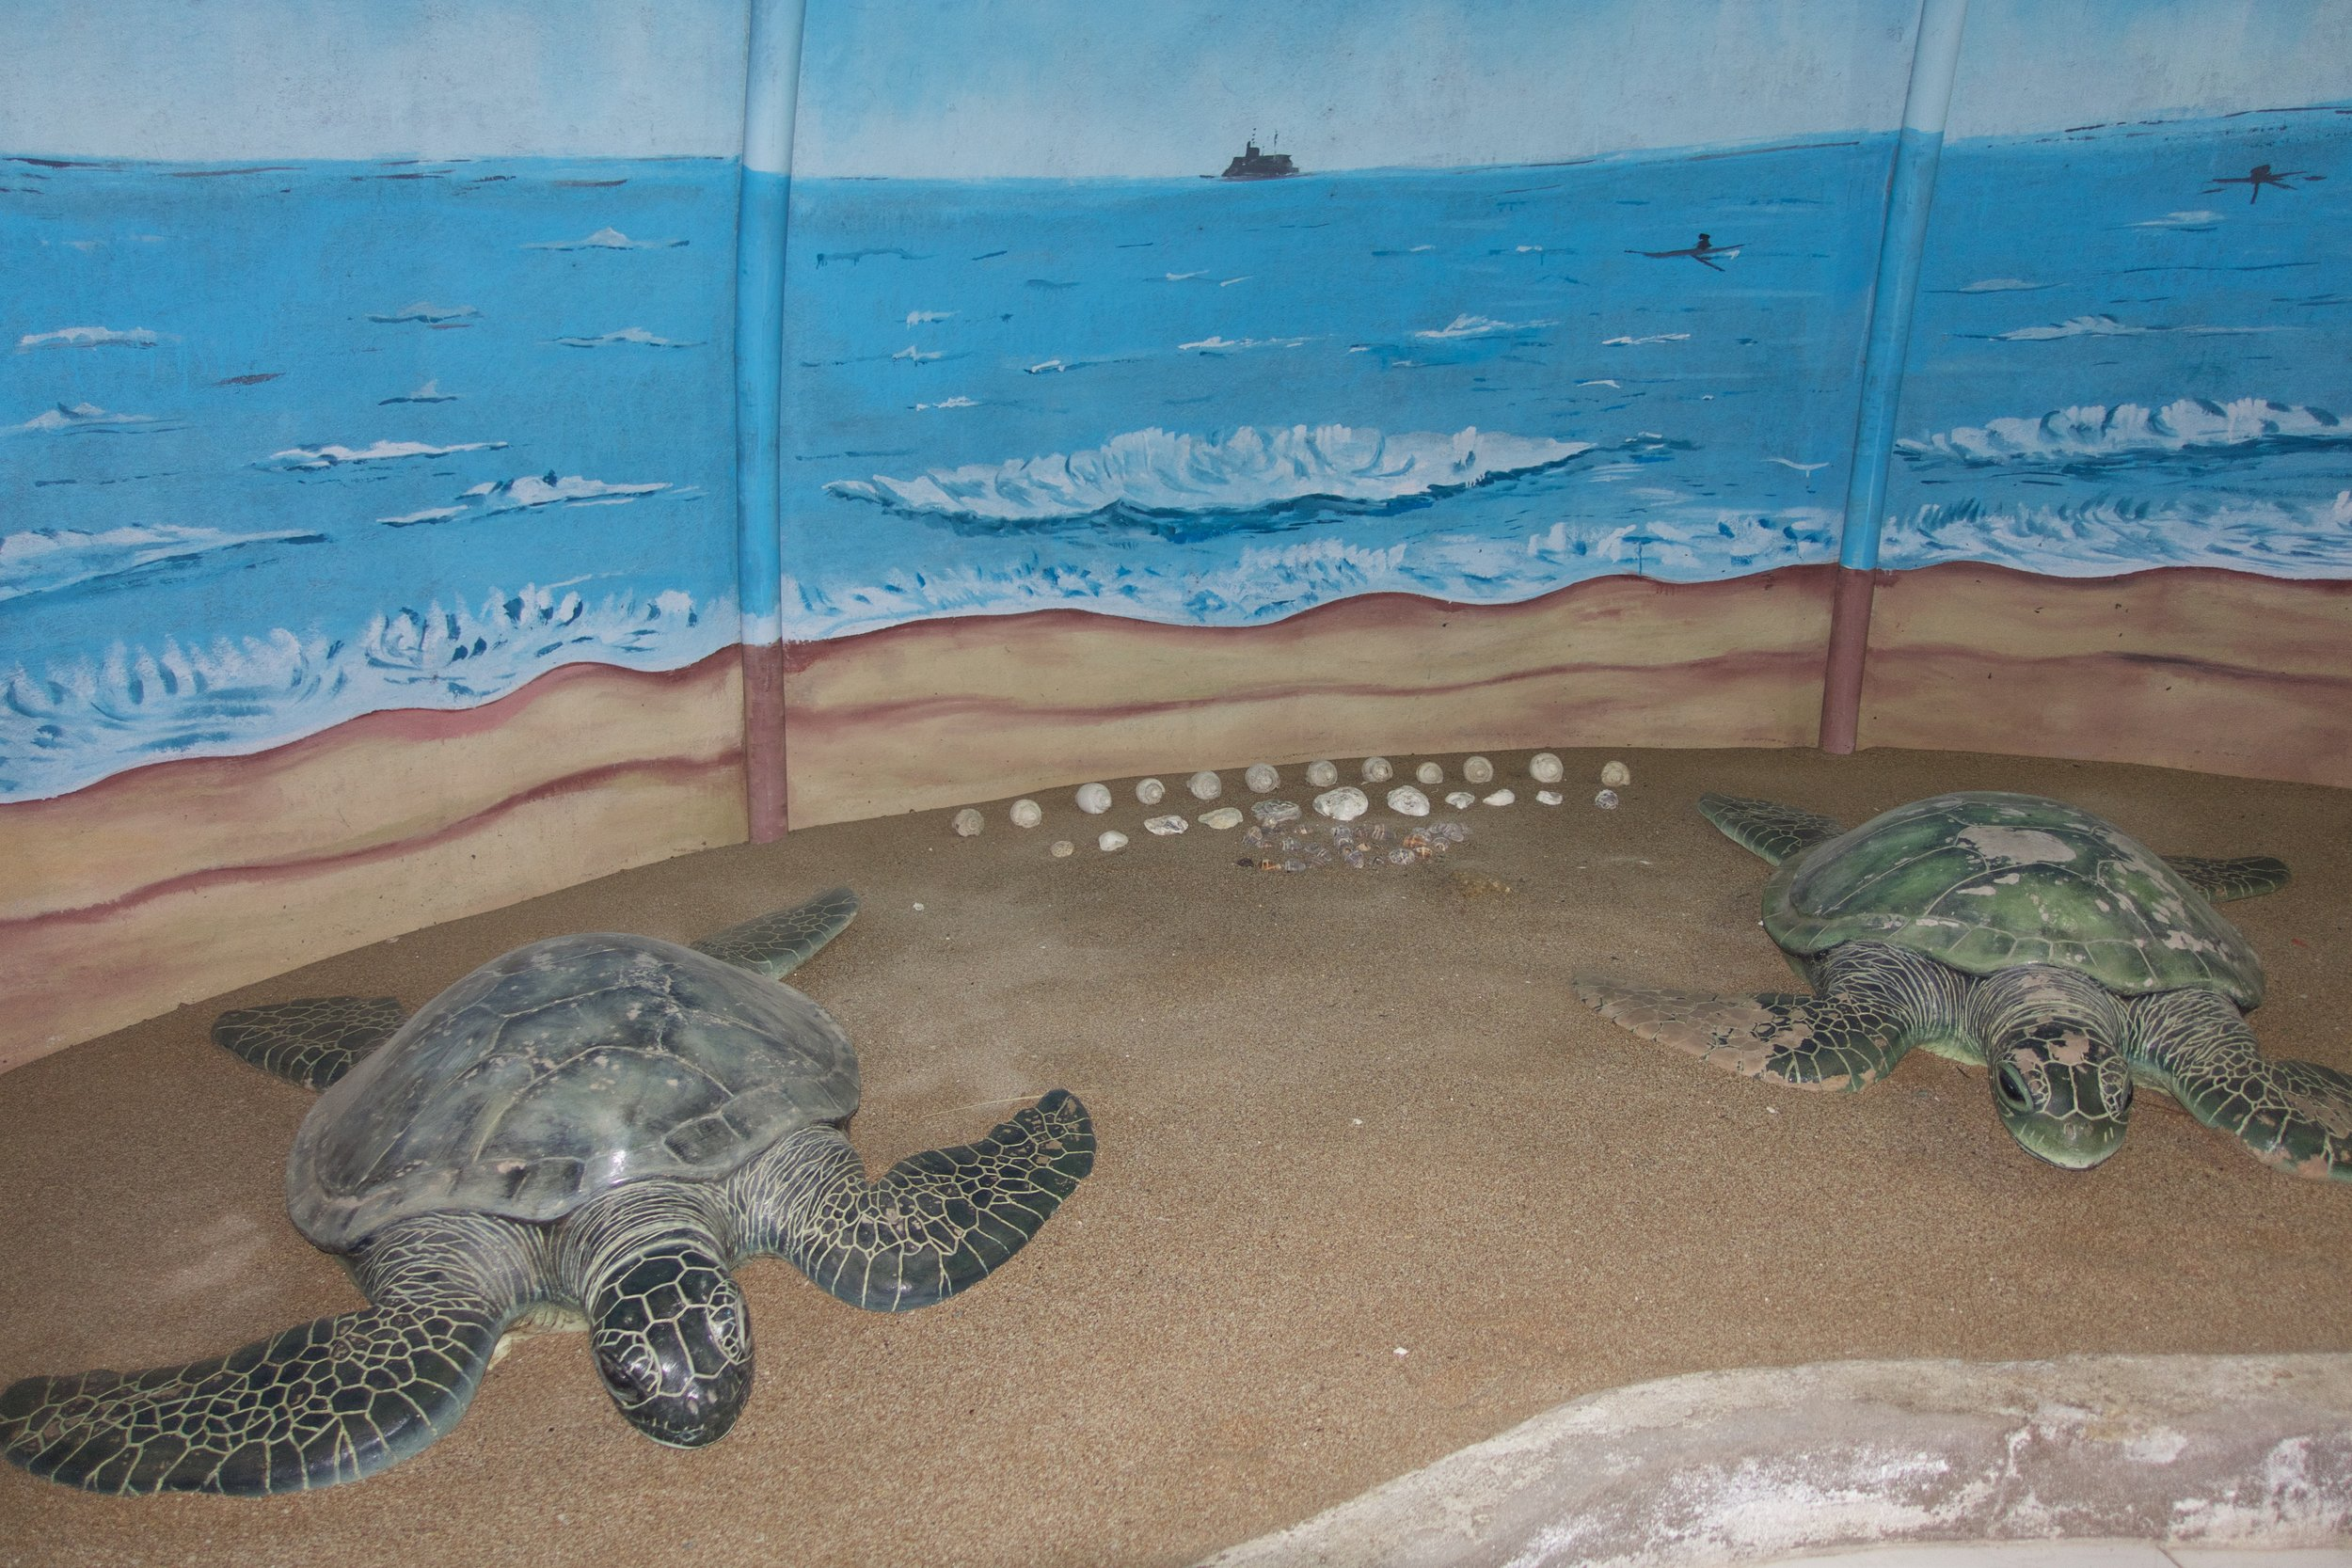 Green turtle casts in the nature center